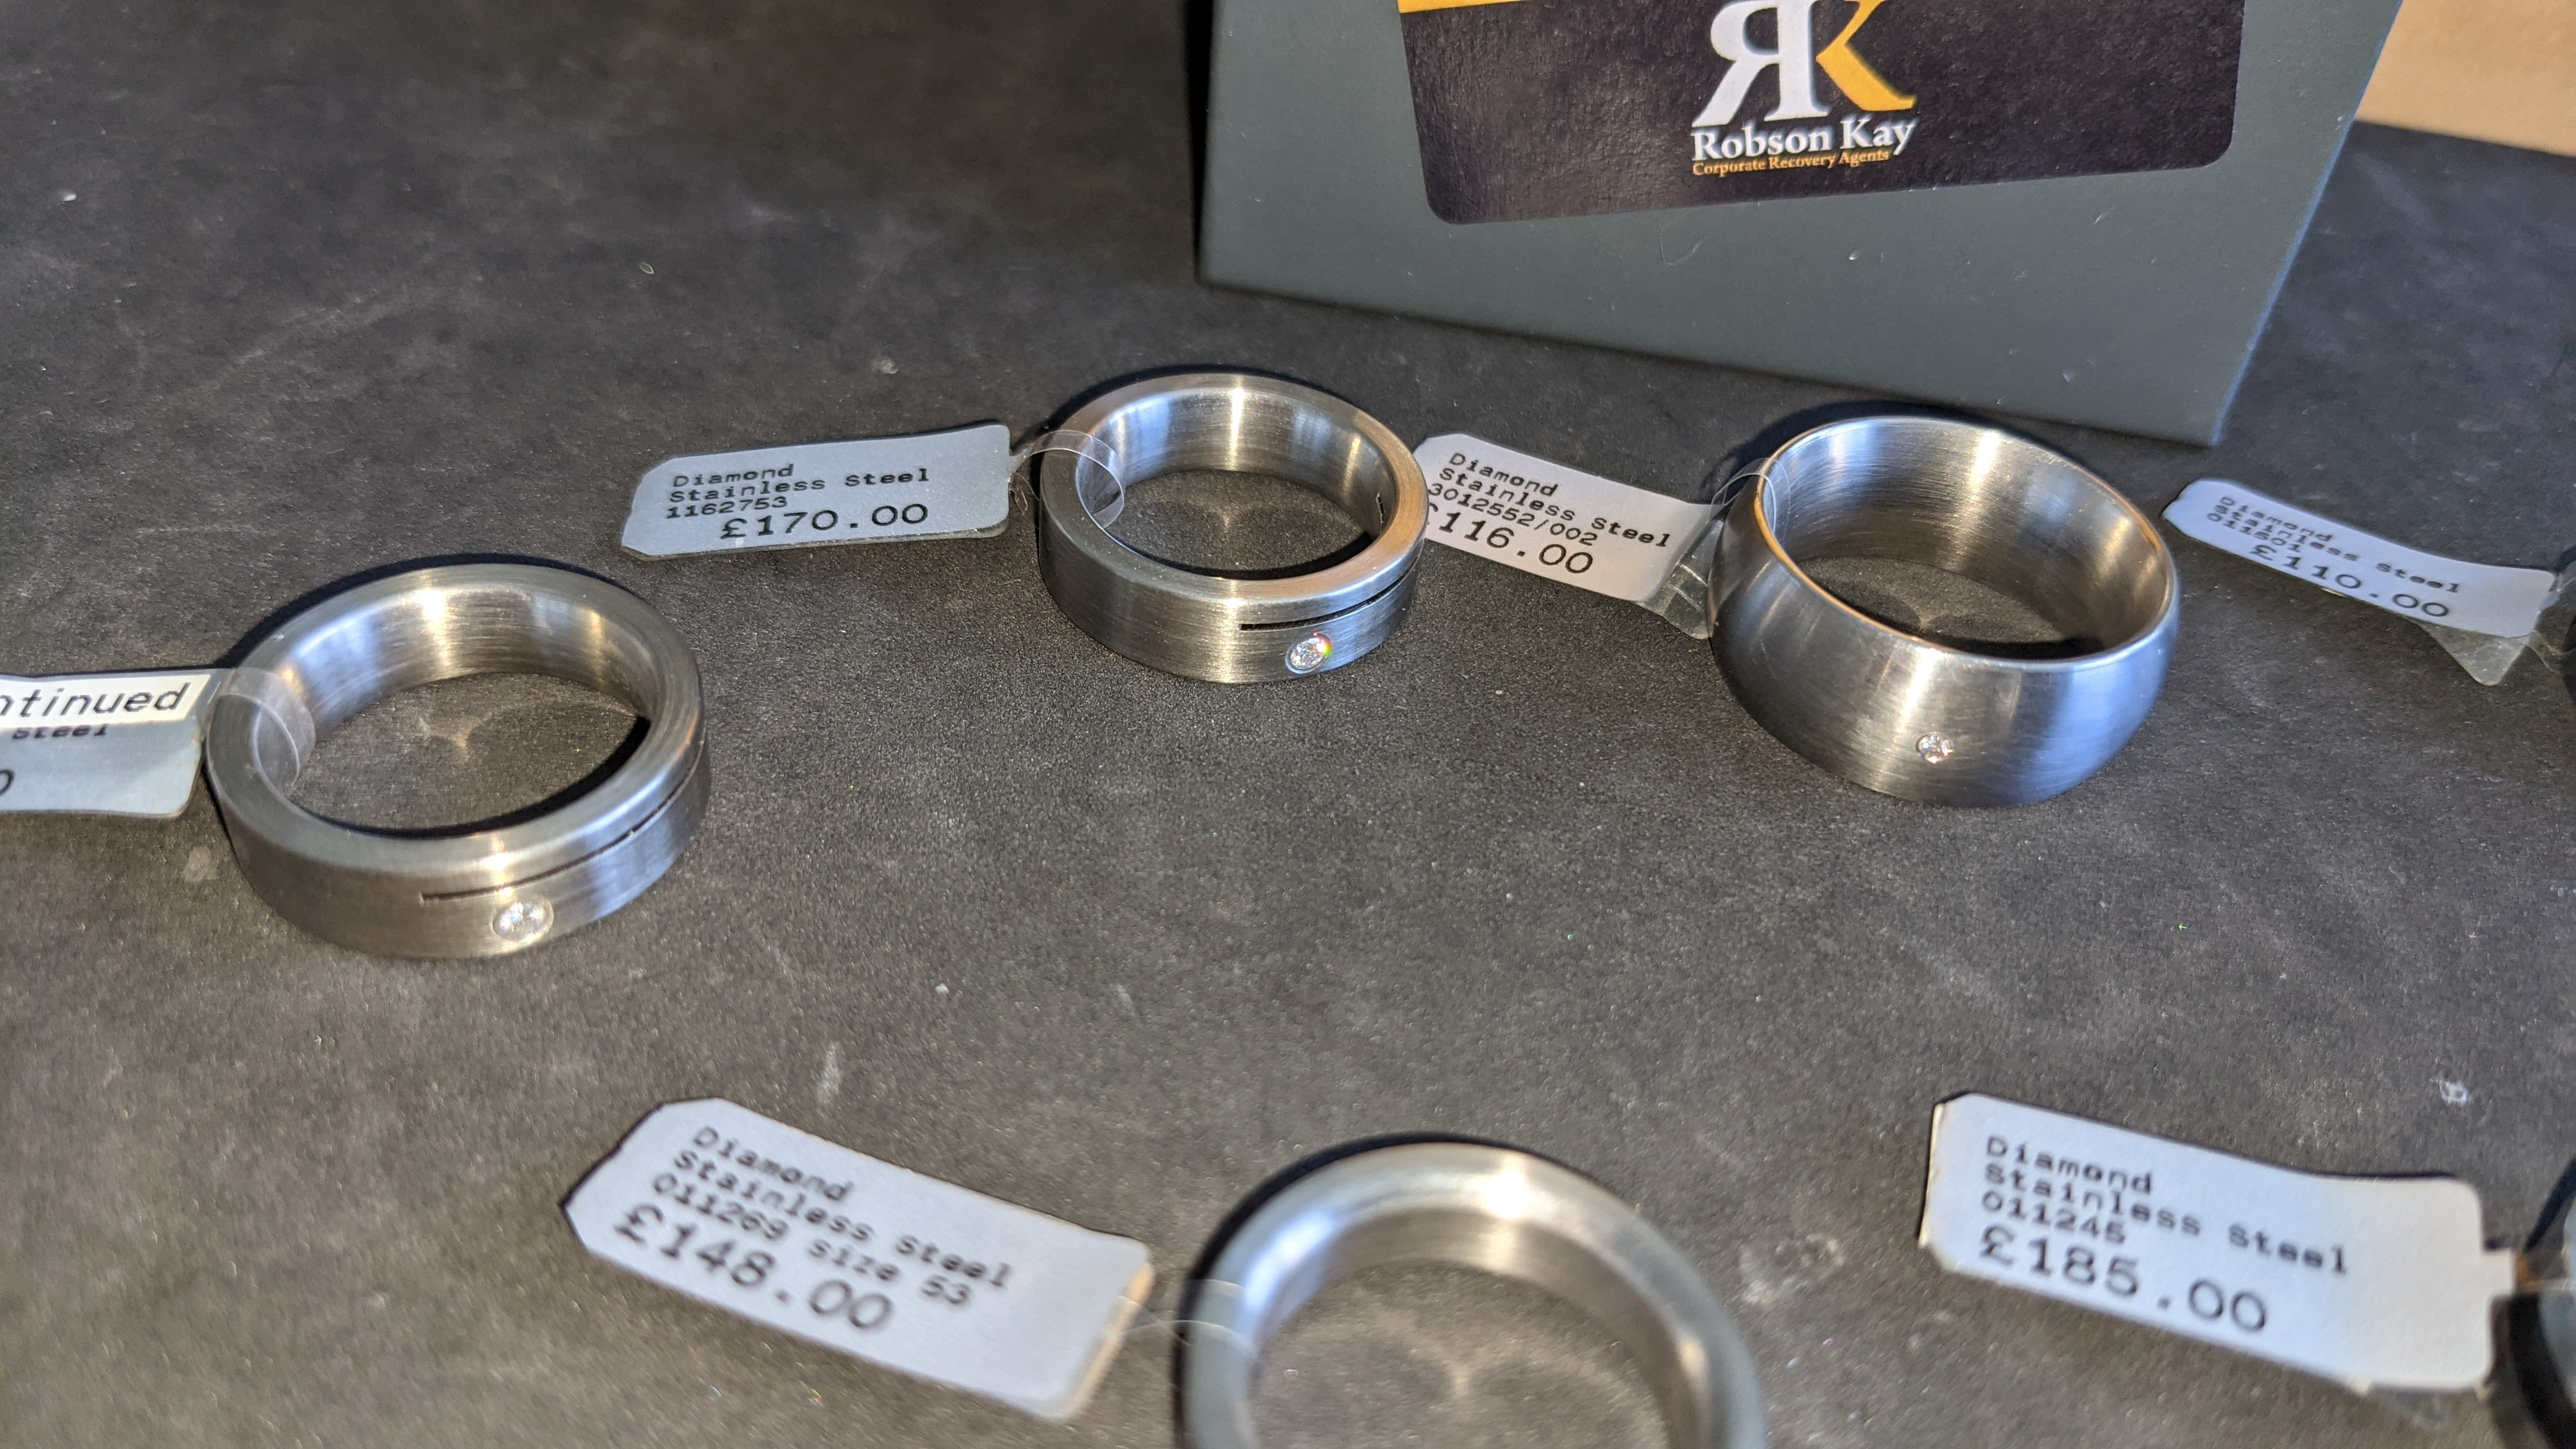 7 off assorted stainless steel & diamond rings. RRPs from £110 - £185. Total RRP £1,089 - Image 8 of 12